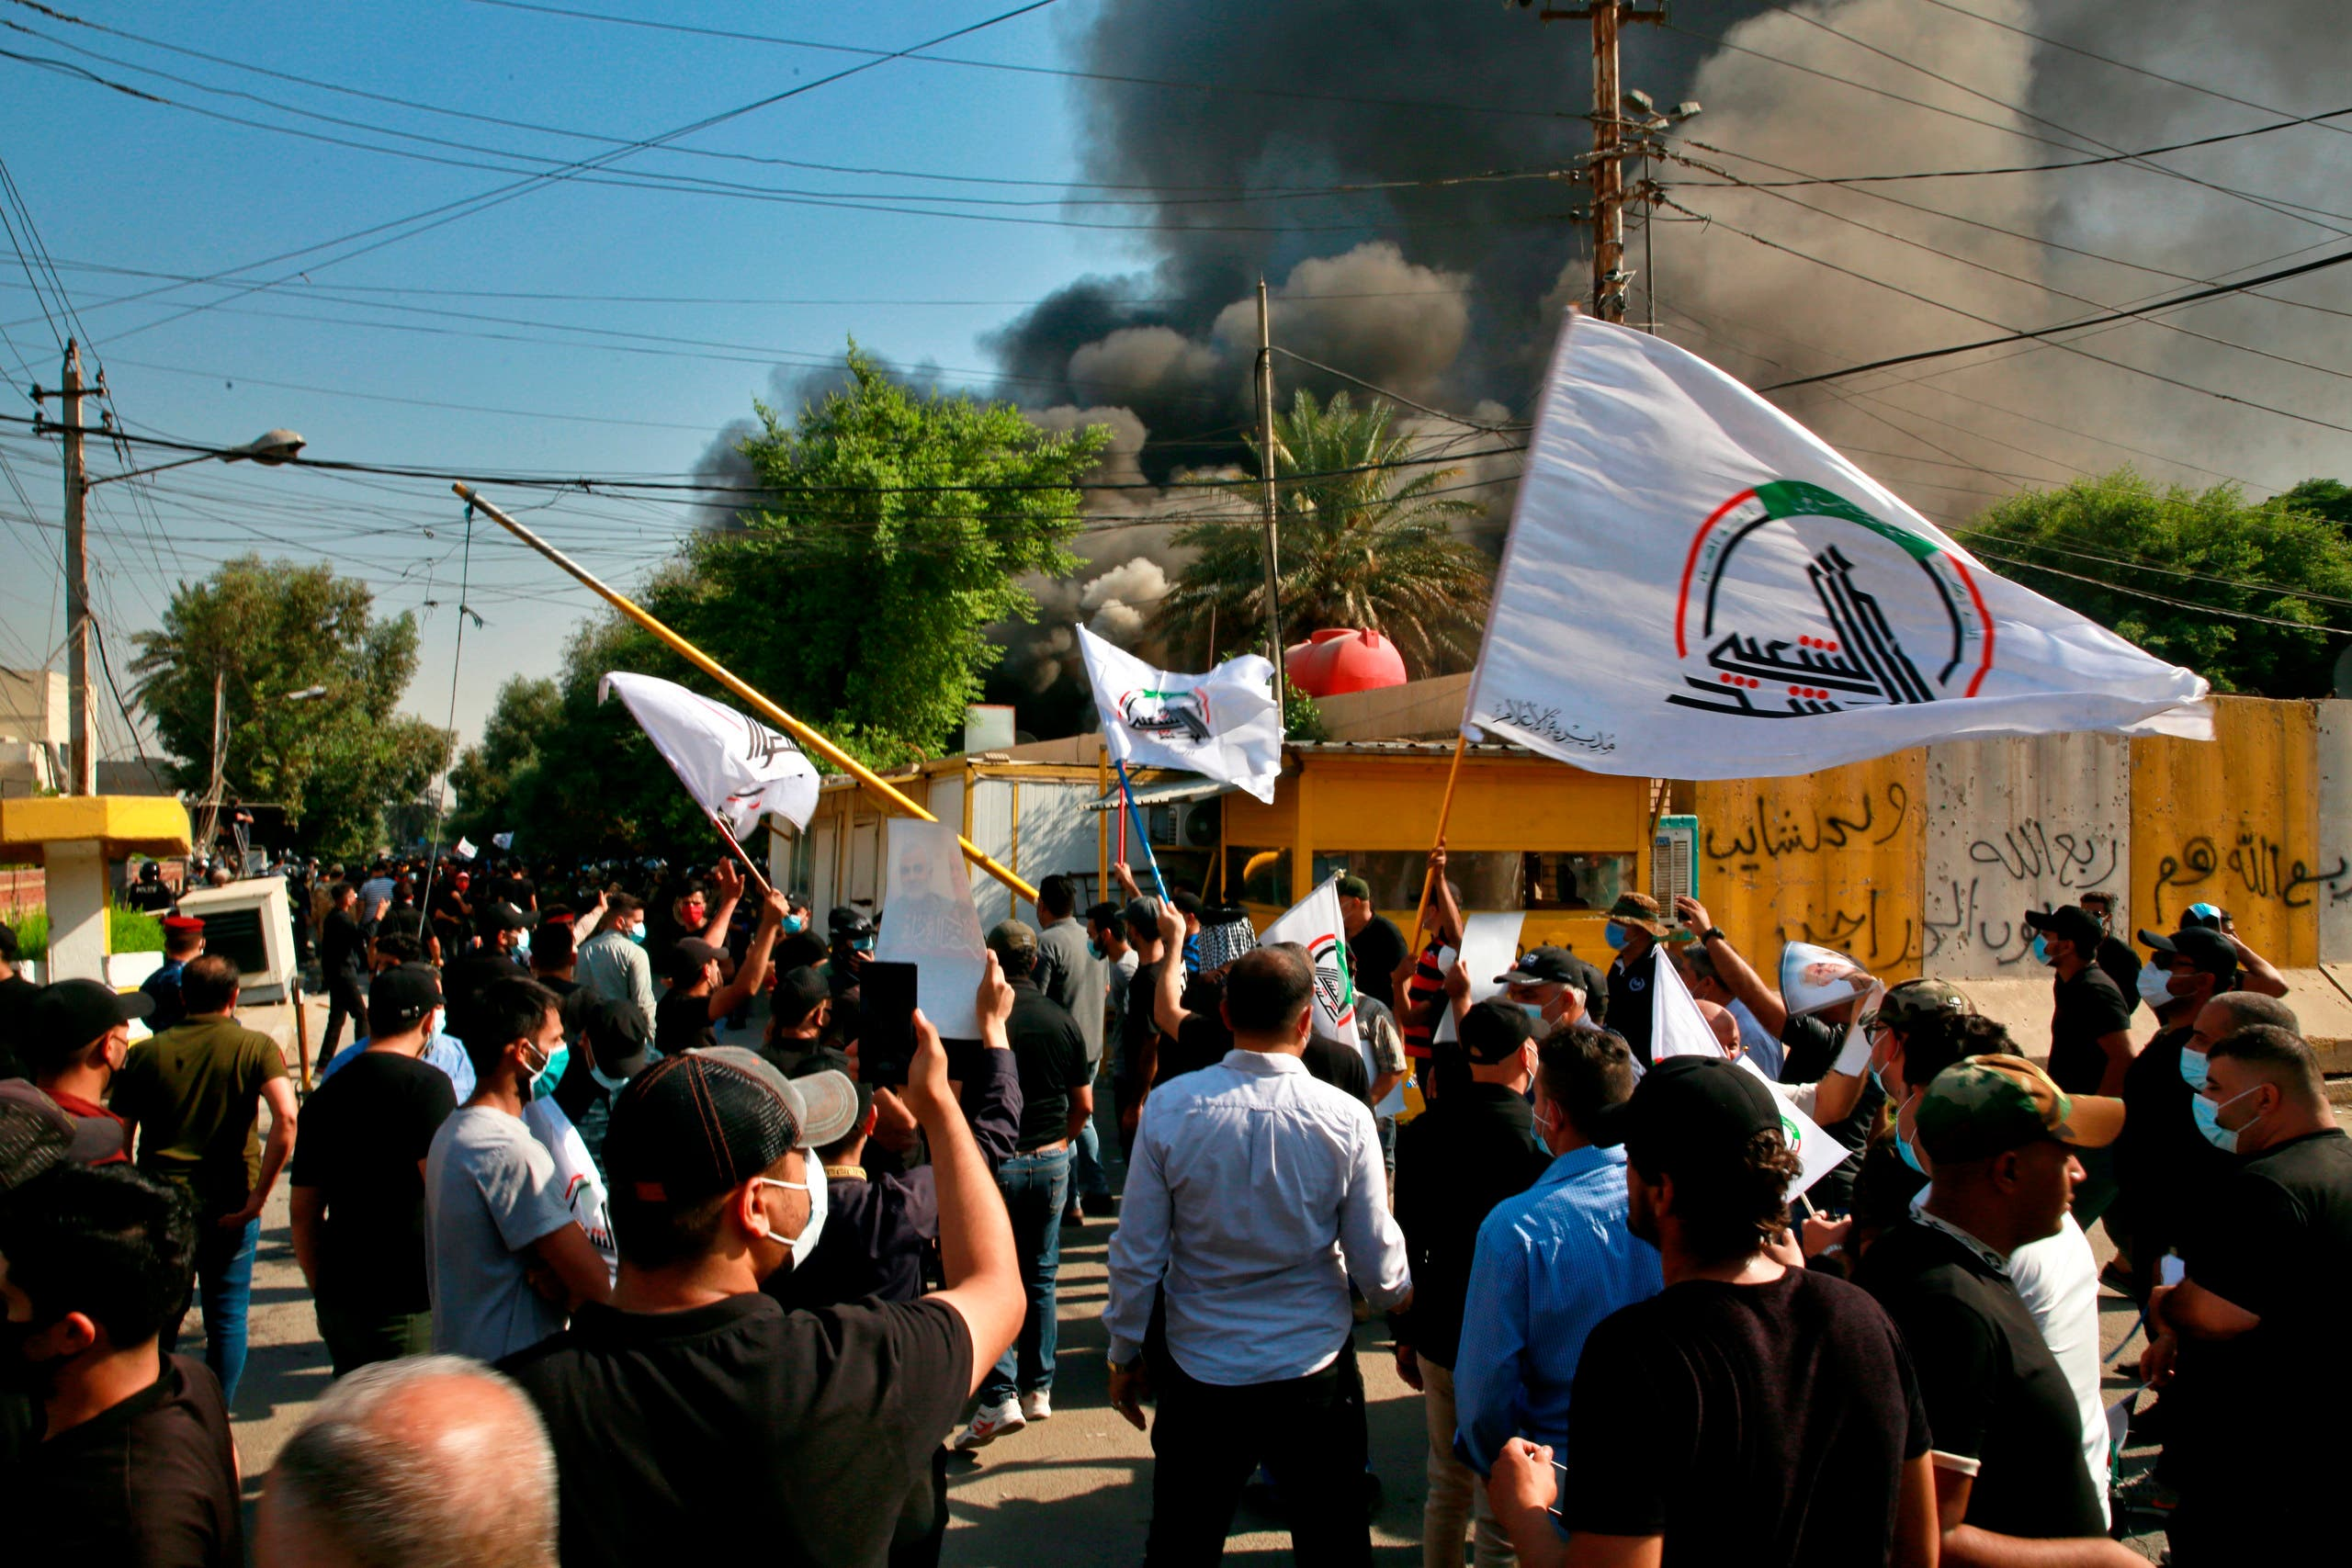 Carrying Soleimani posters, pro-Iran protesters torch Kurd party offices in Iraq 543243f0-1098-4e3f-8321-54032d52ec3d